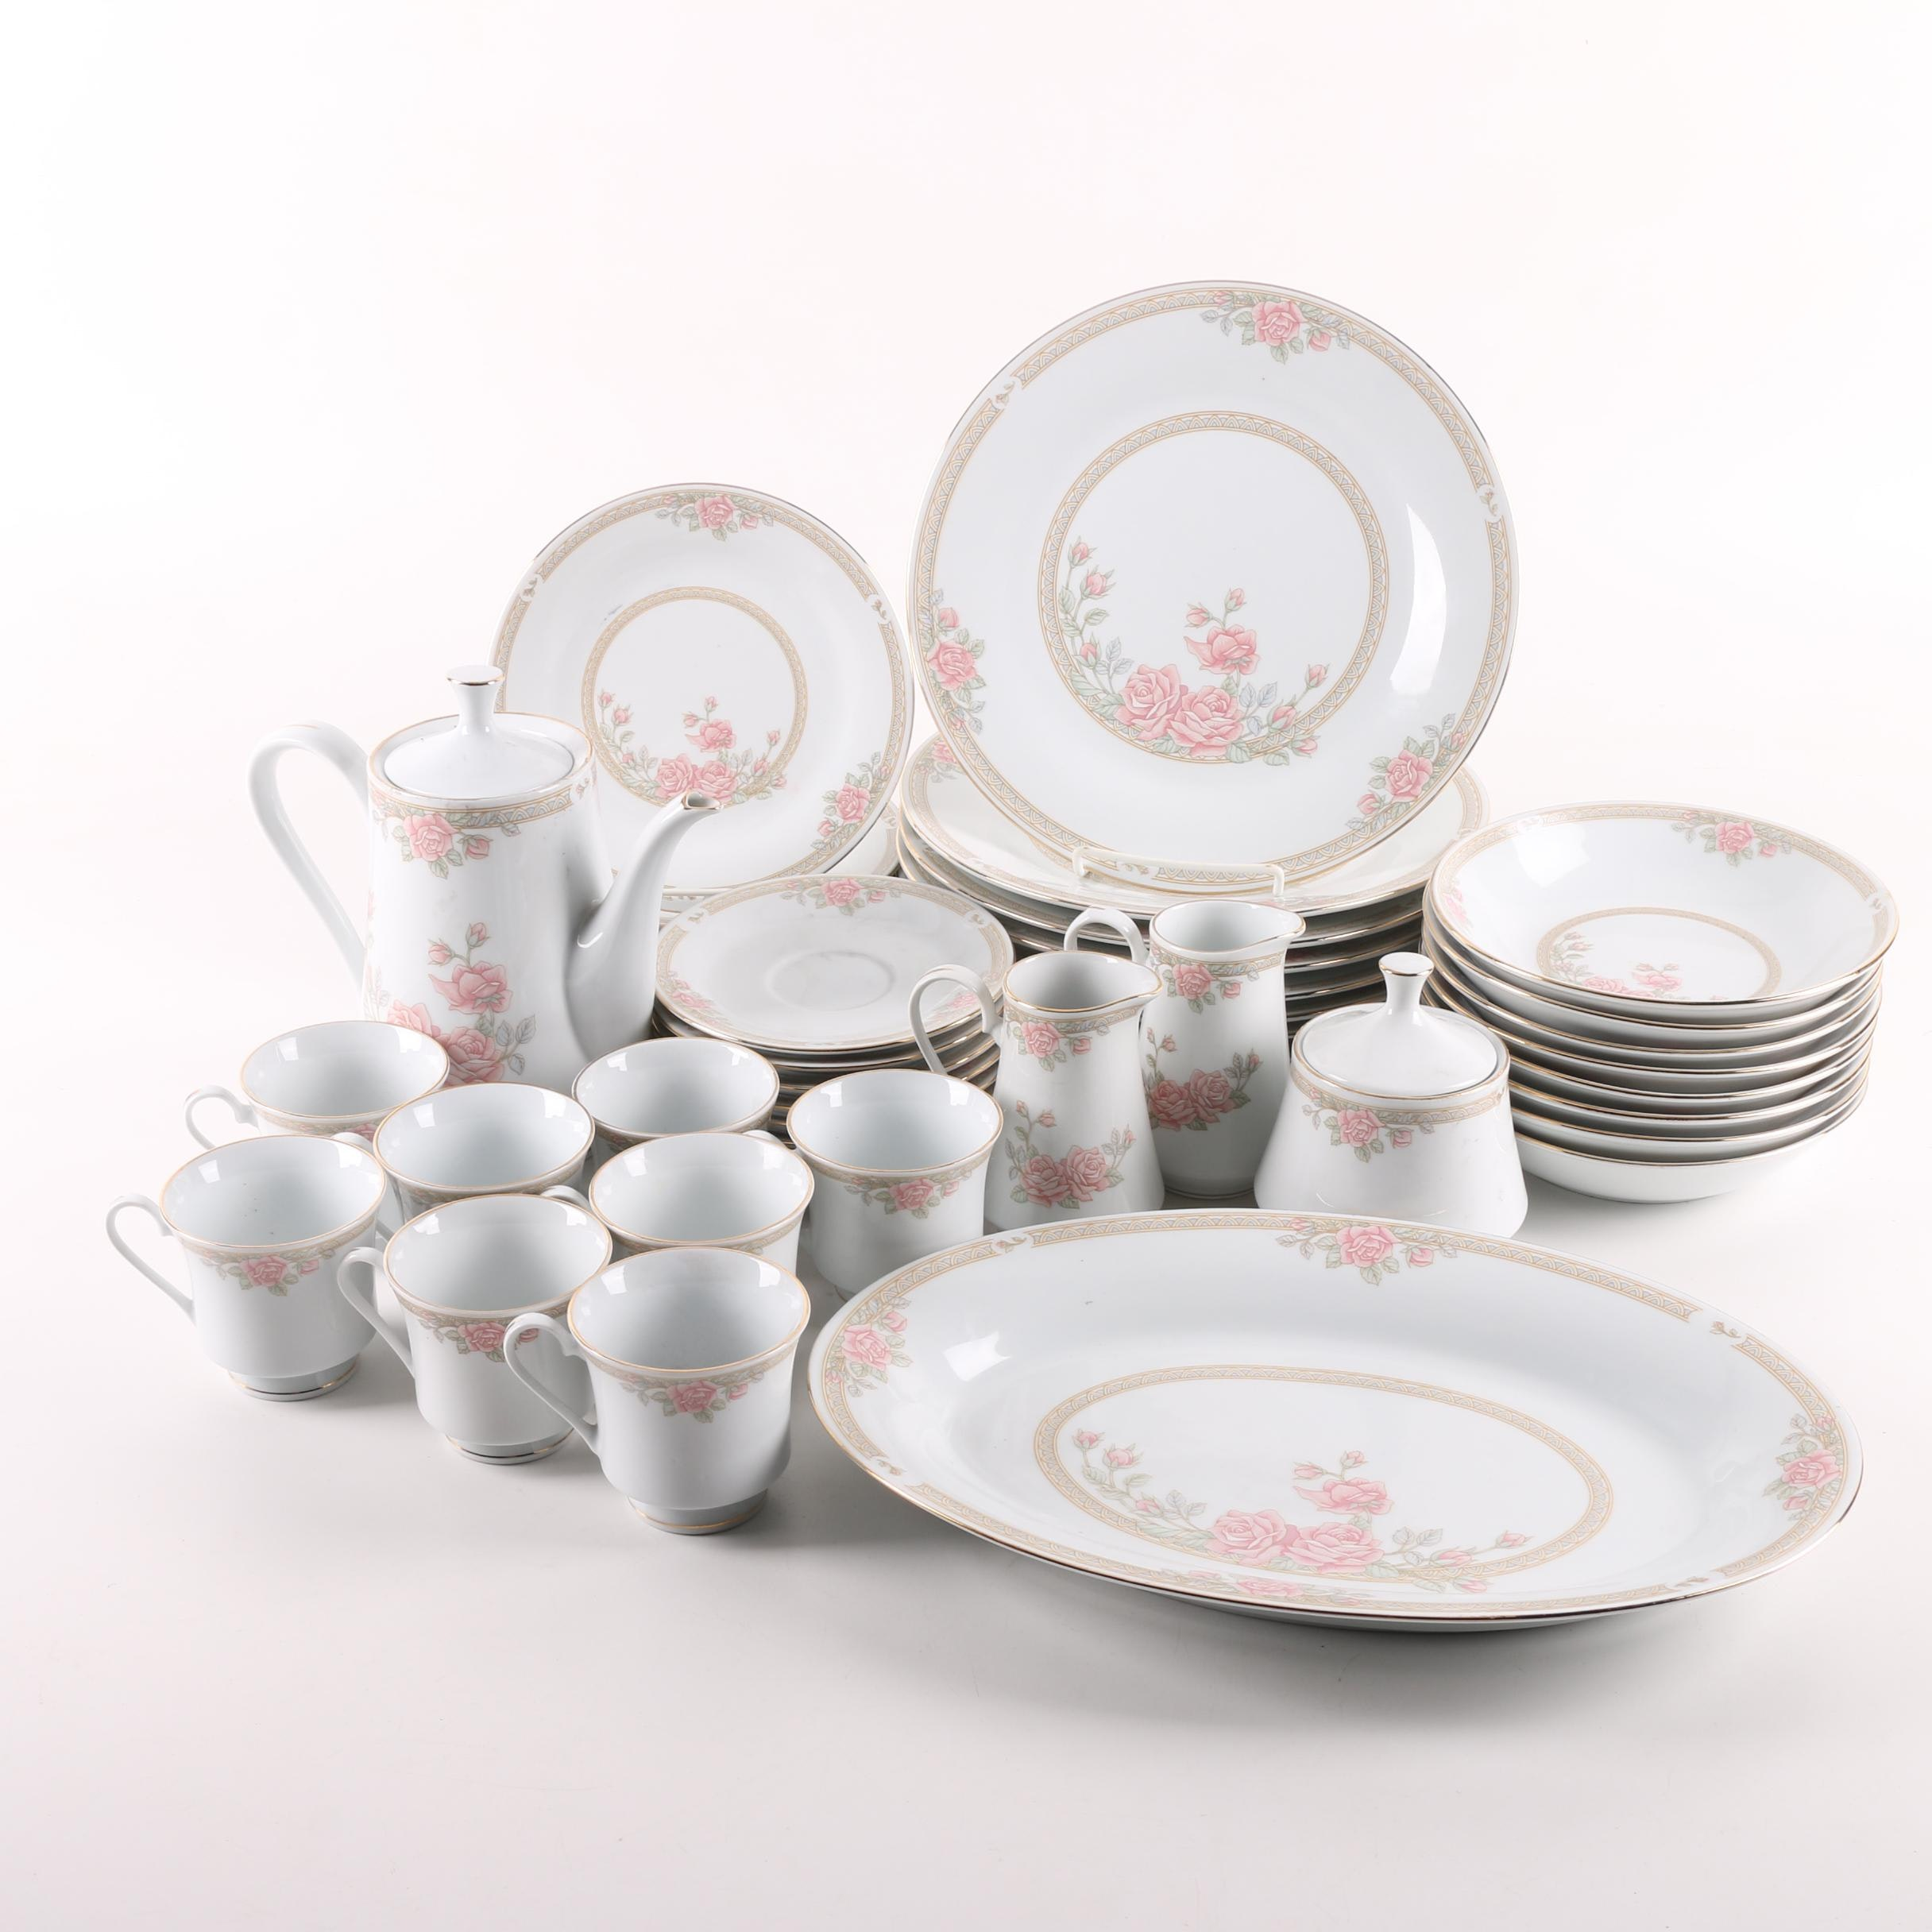 Tienshan Pink Rose Porcelain Dinnerware and Serving Dishes